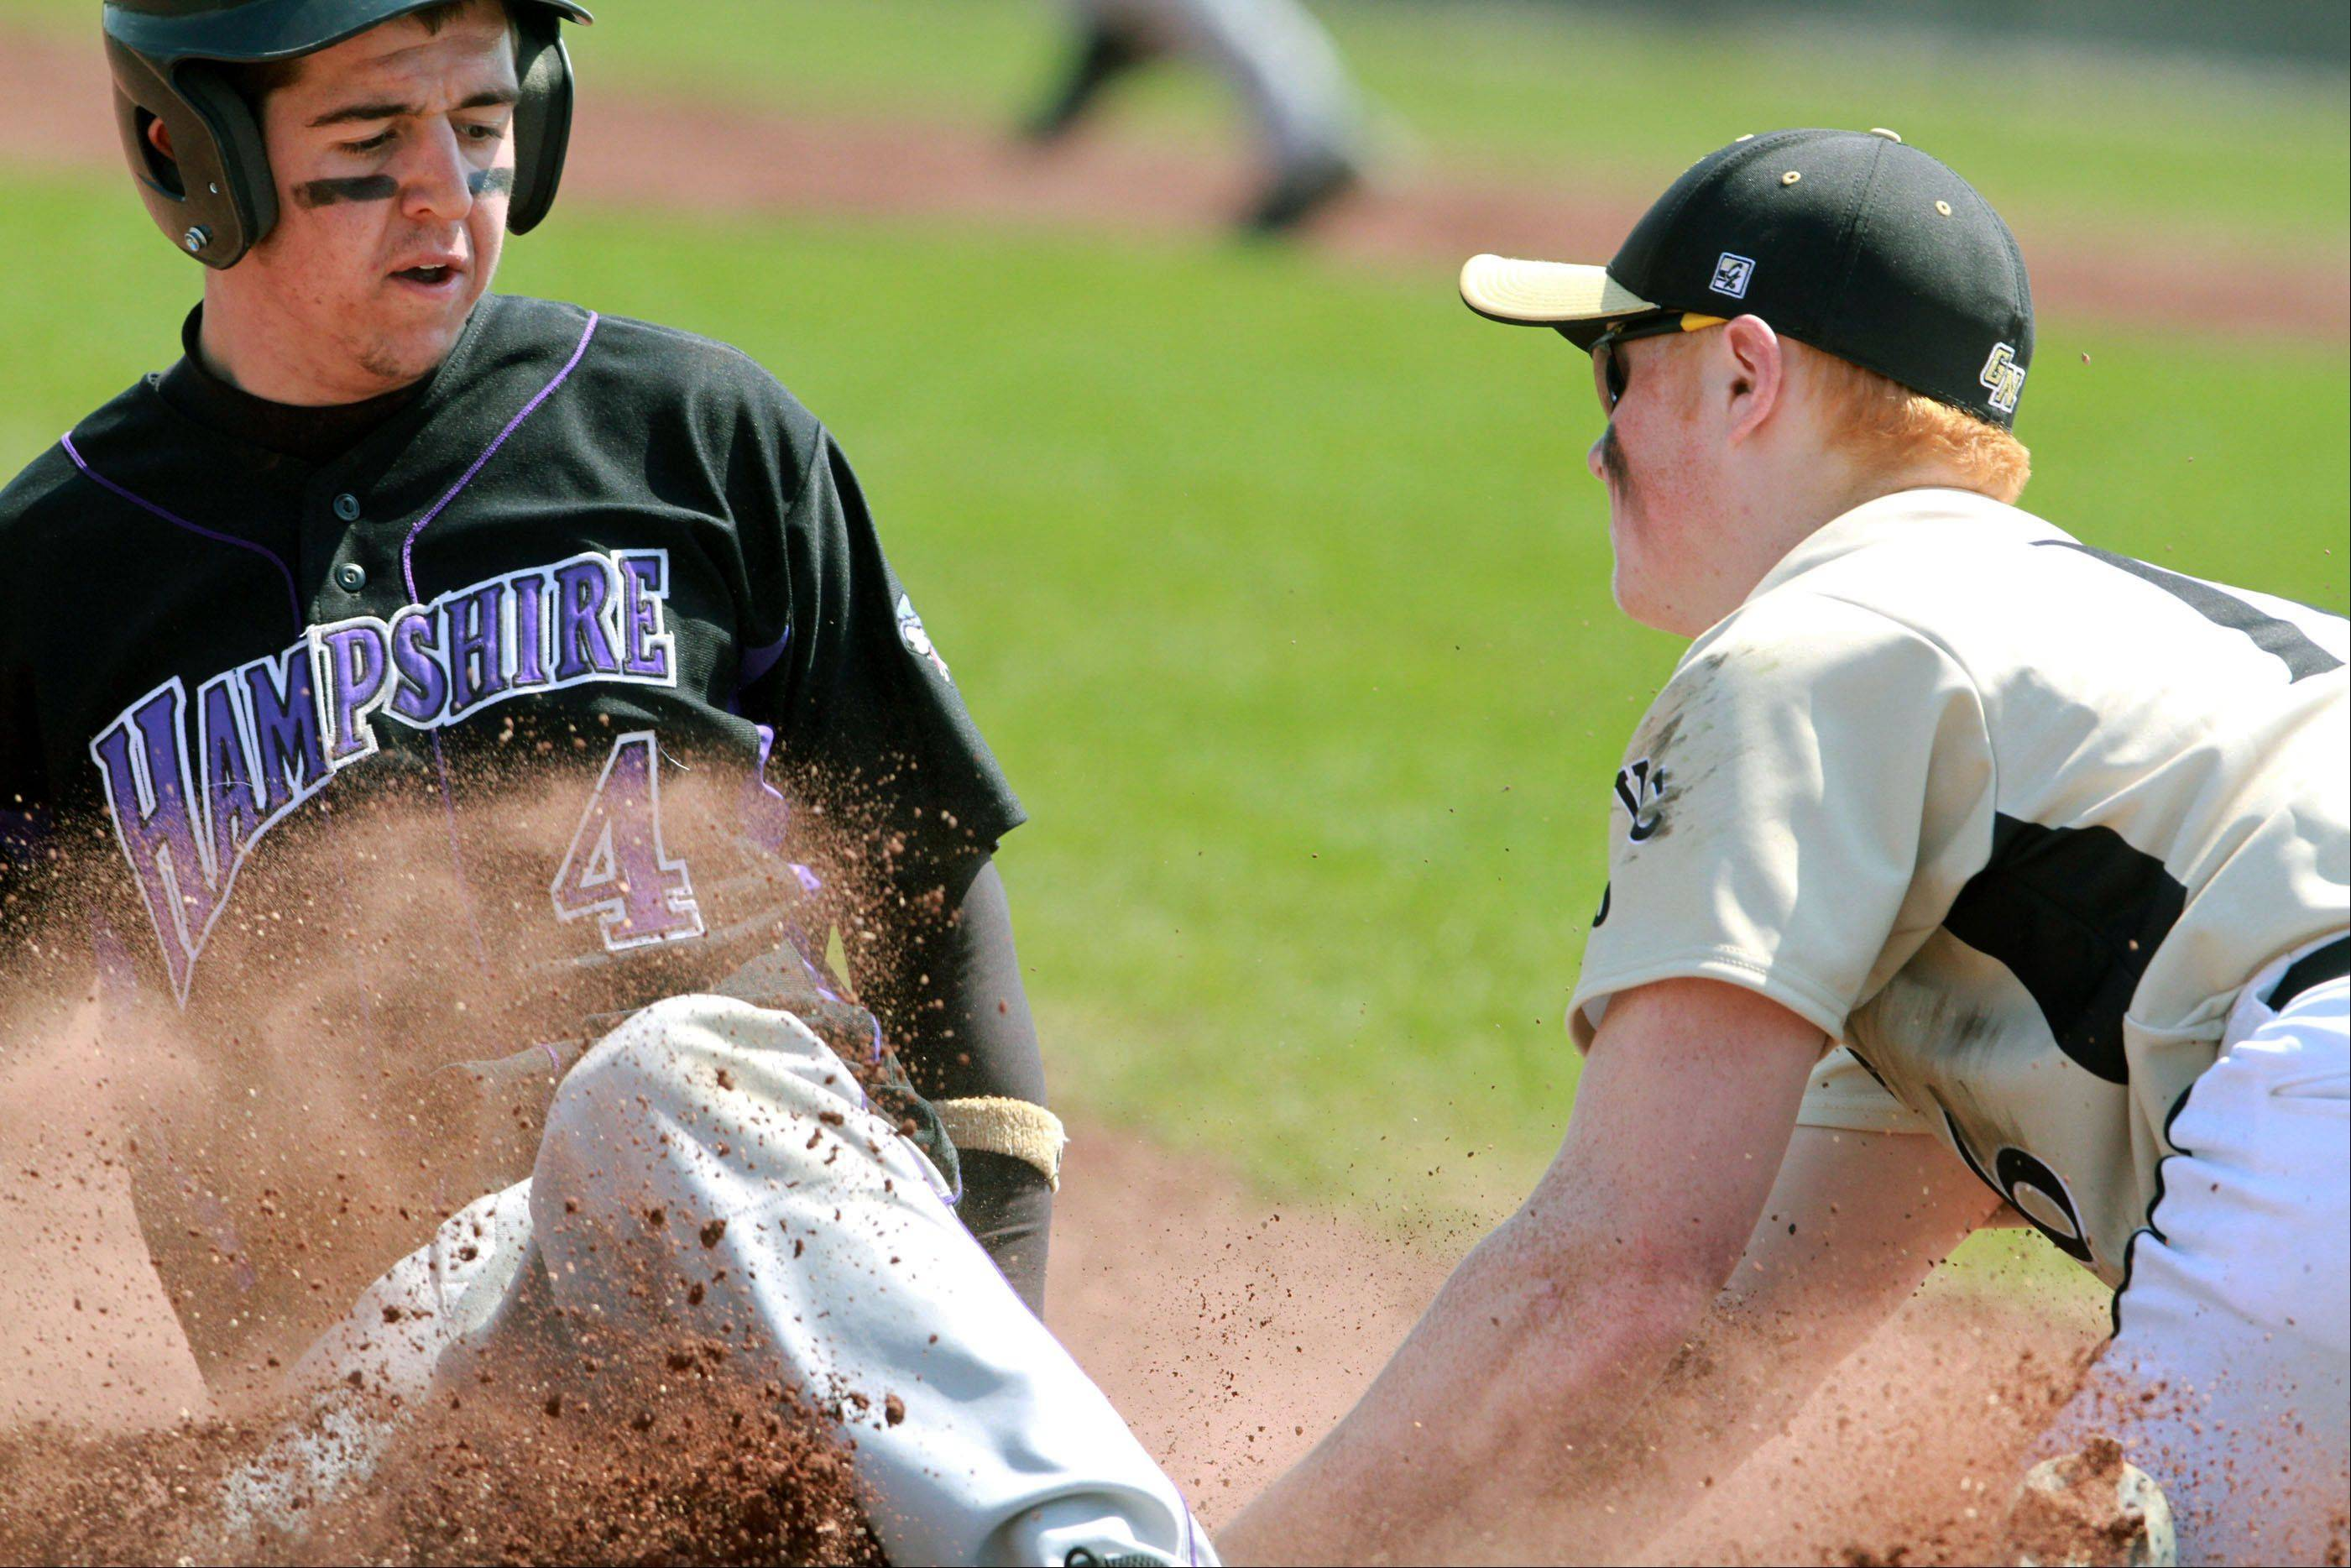 Hampshire's Michael Laramie is out at third as Grayslake North third-baseman Merrick Gentile applies the tag at Grayslake North on Saturday.